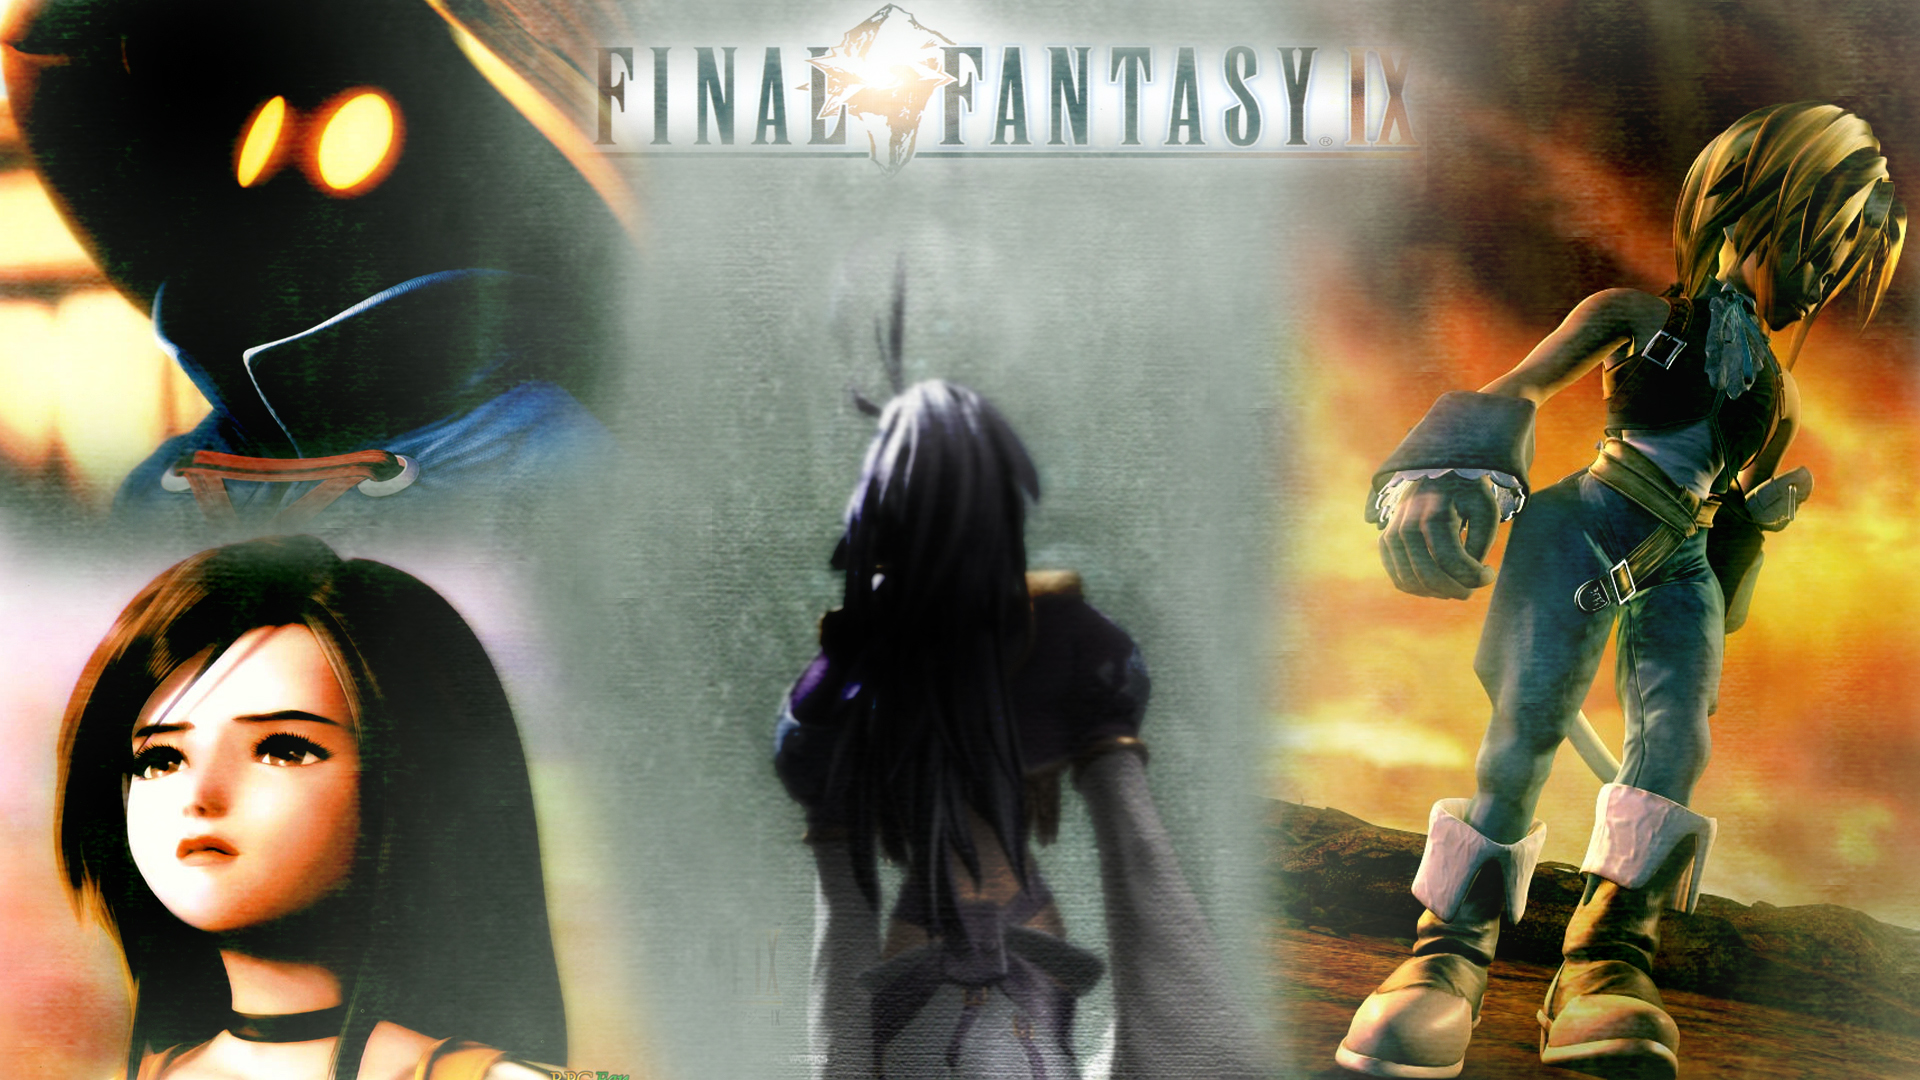 Final Fantasy 9 Wallpaper: Final Fantasy IX Computer Wallpapers, Desktop Backgrounds